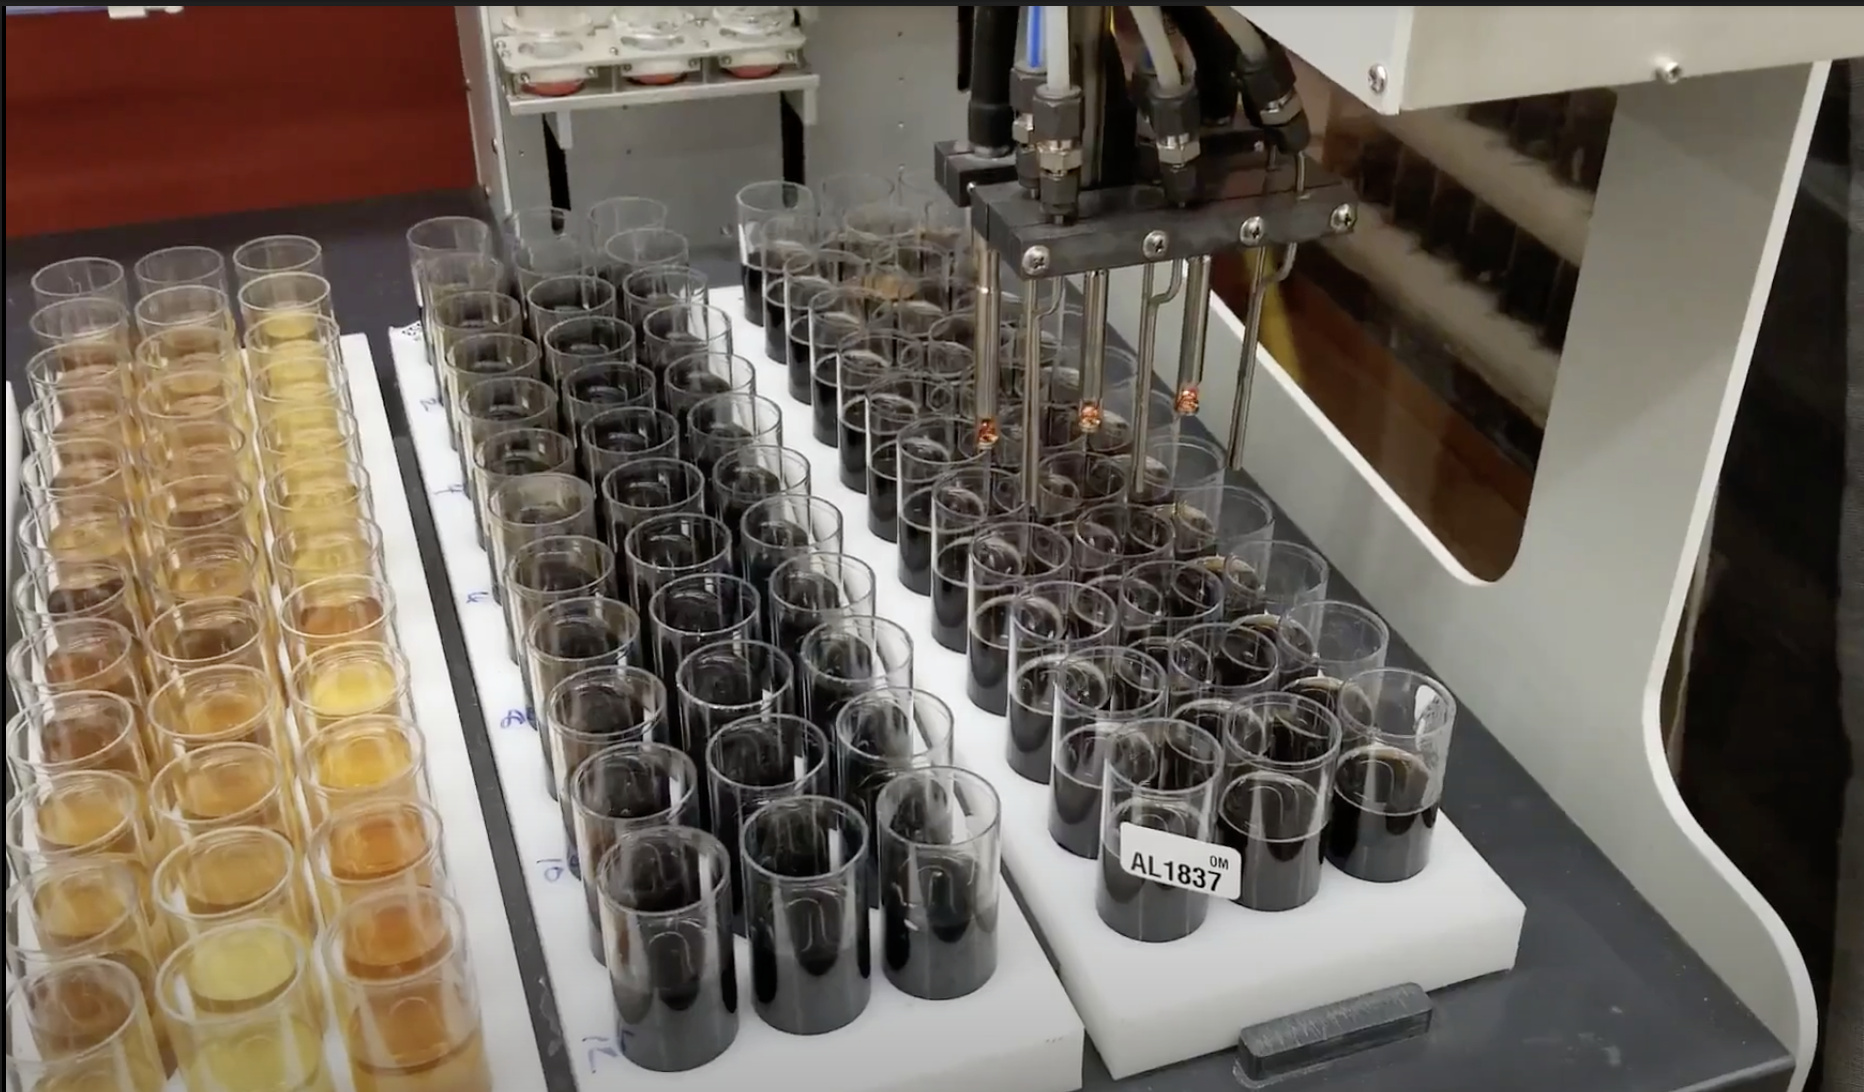 soil samples being tested at the NCDA lab.